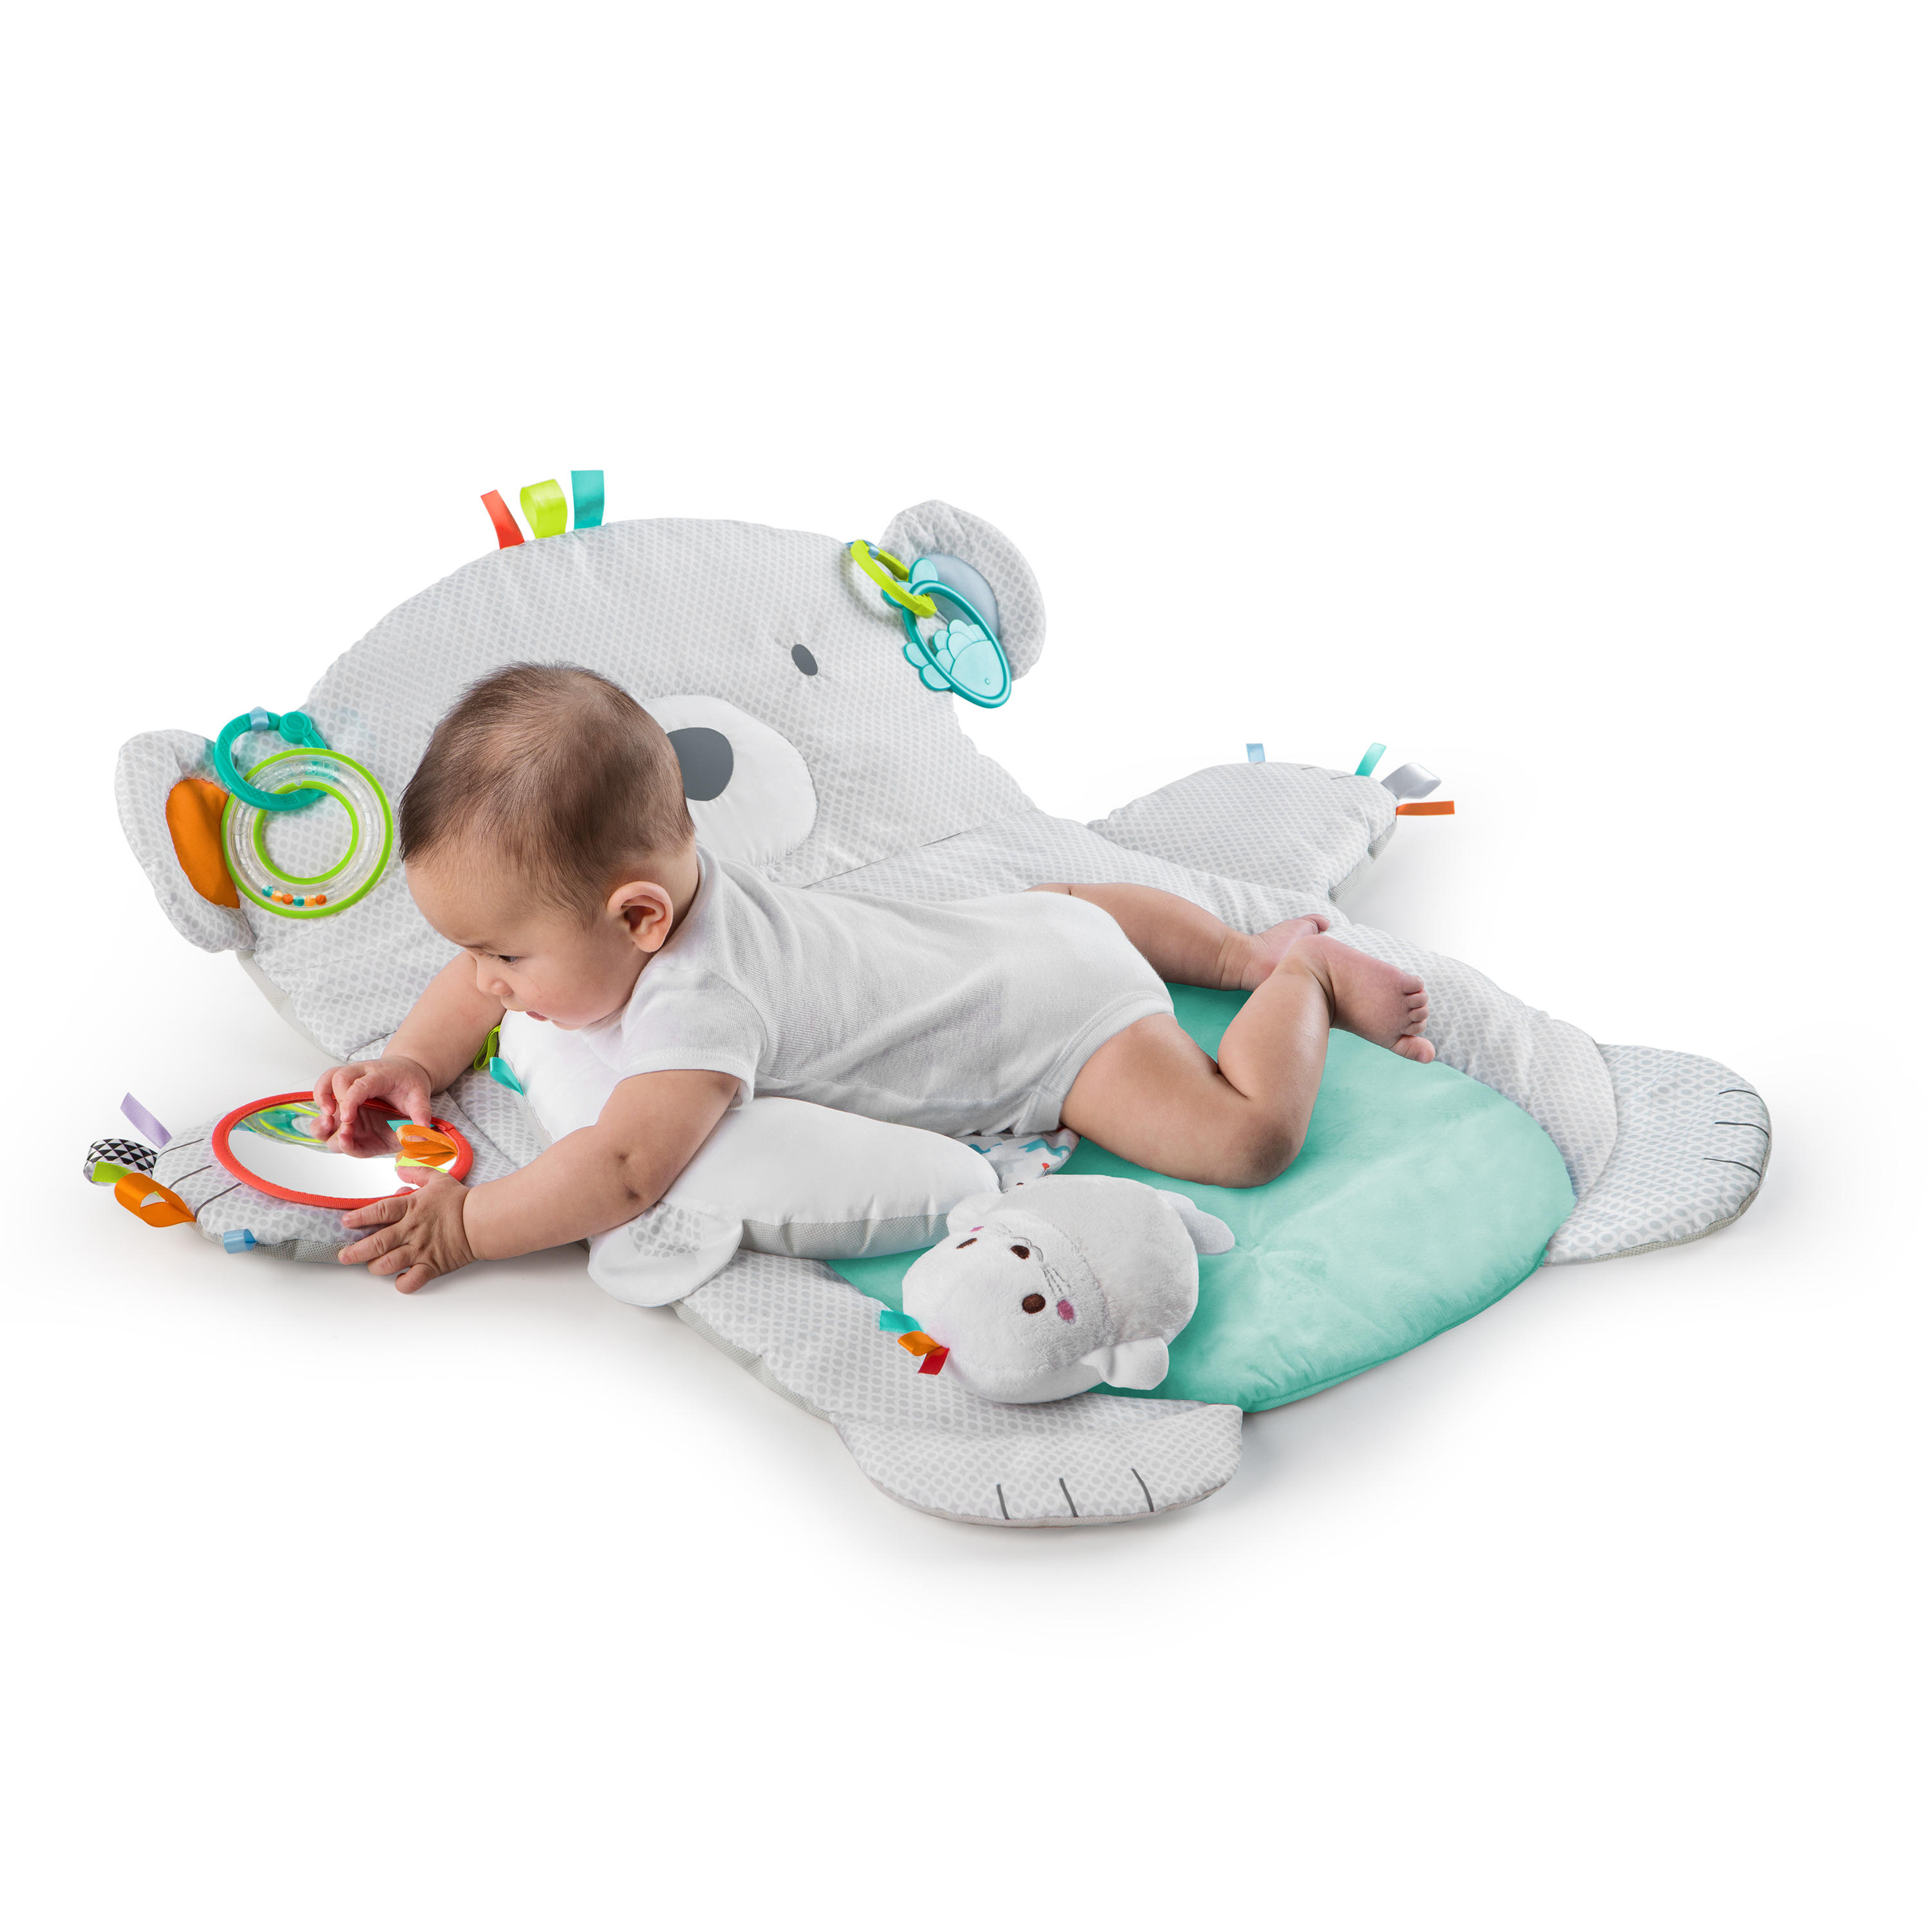 Tummy Time Prop & Play